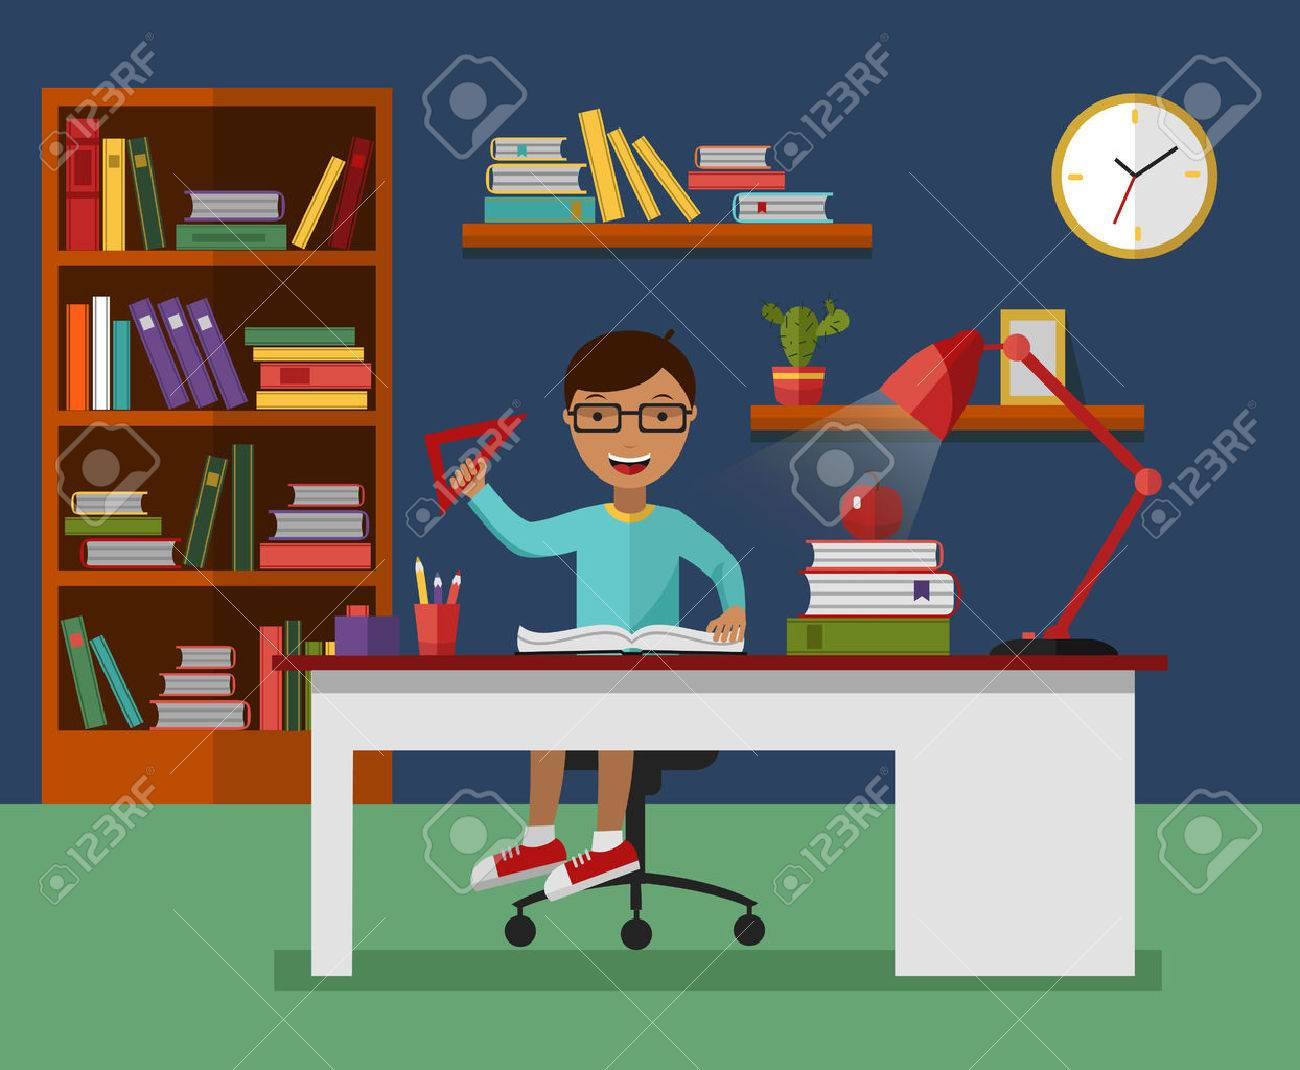 Kid Learns Concept. Child Reading Book And Learning In His Room With  Working Desk,